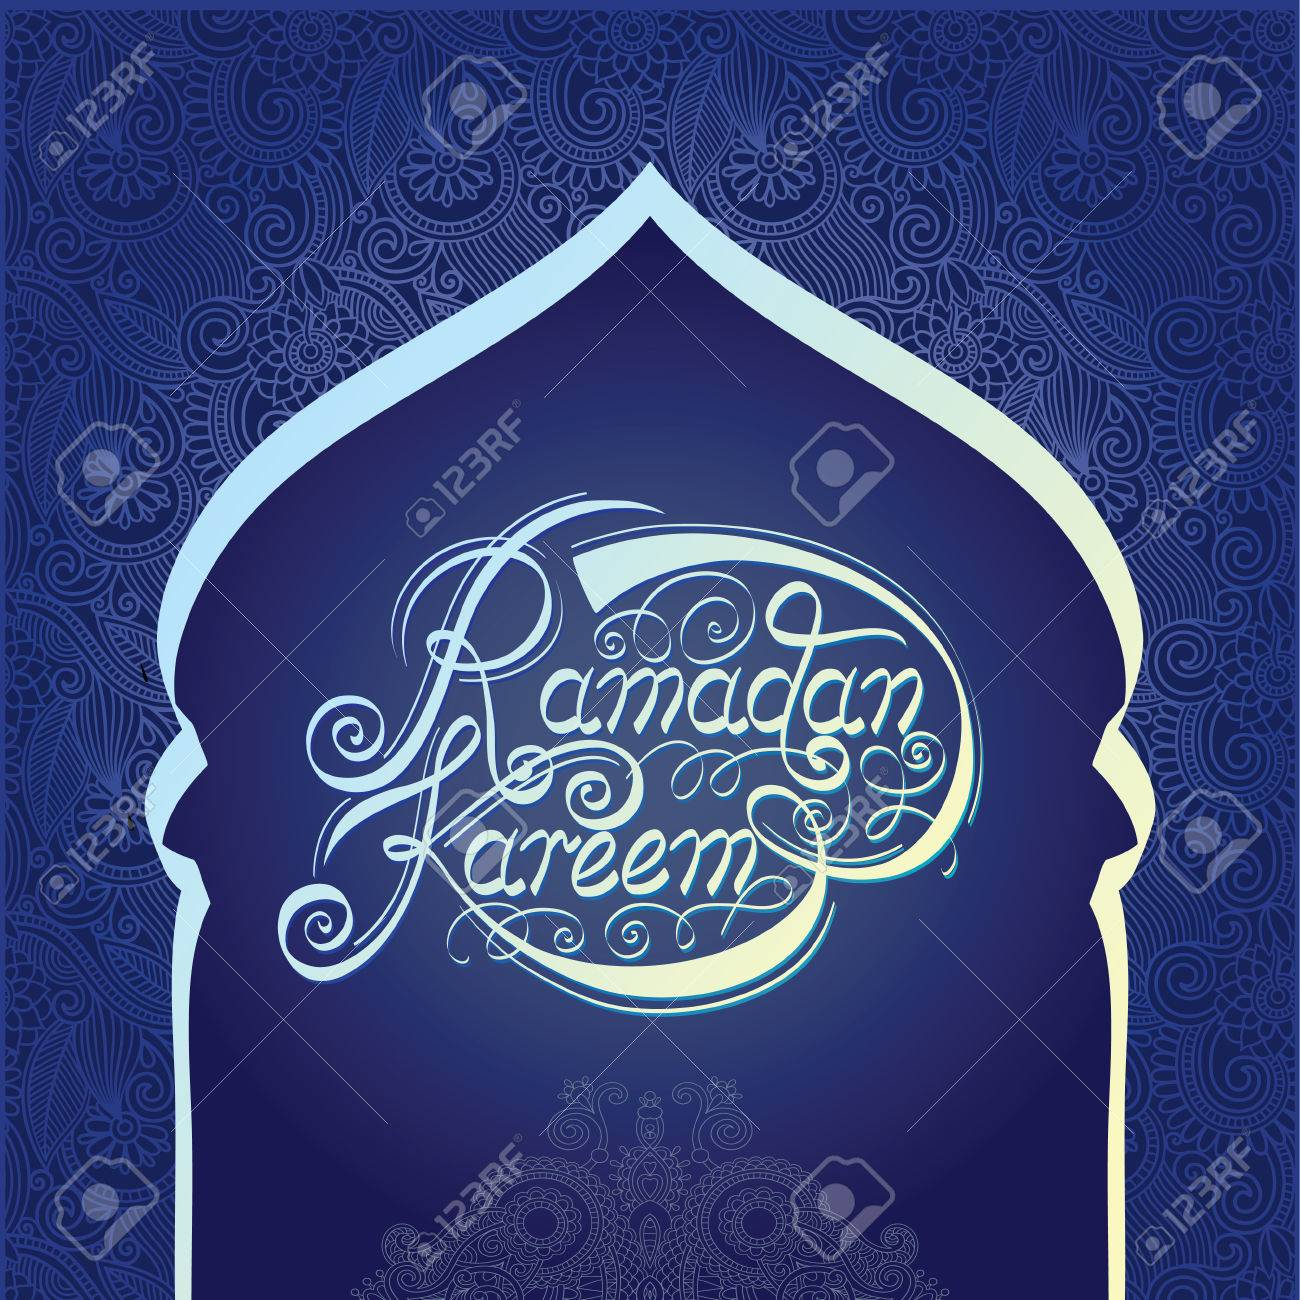 Decorative design for holy month of muslim community festival decorative design for holy month of muslim community festival ramadan kareem invitation card vector stopboris Choice Image